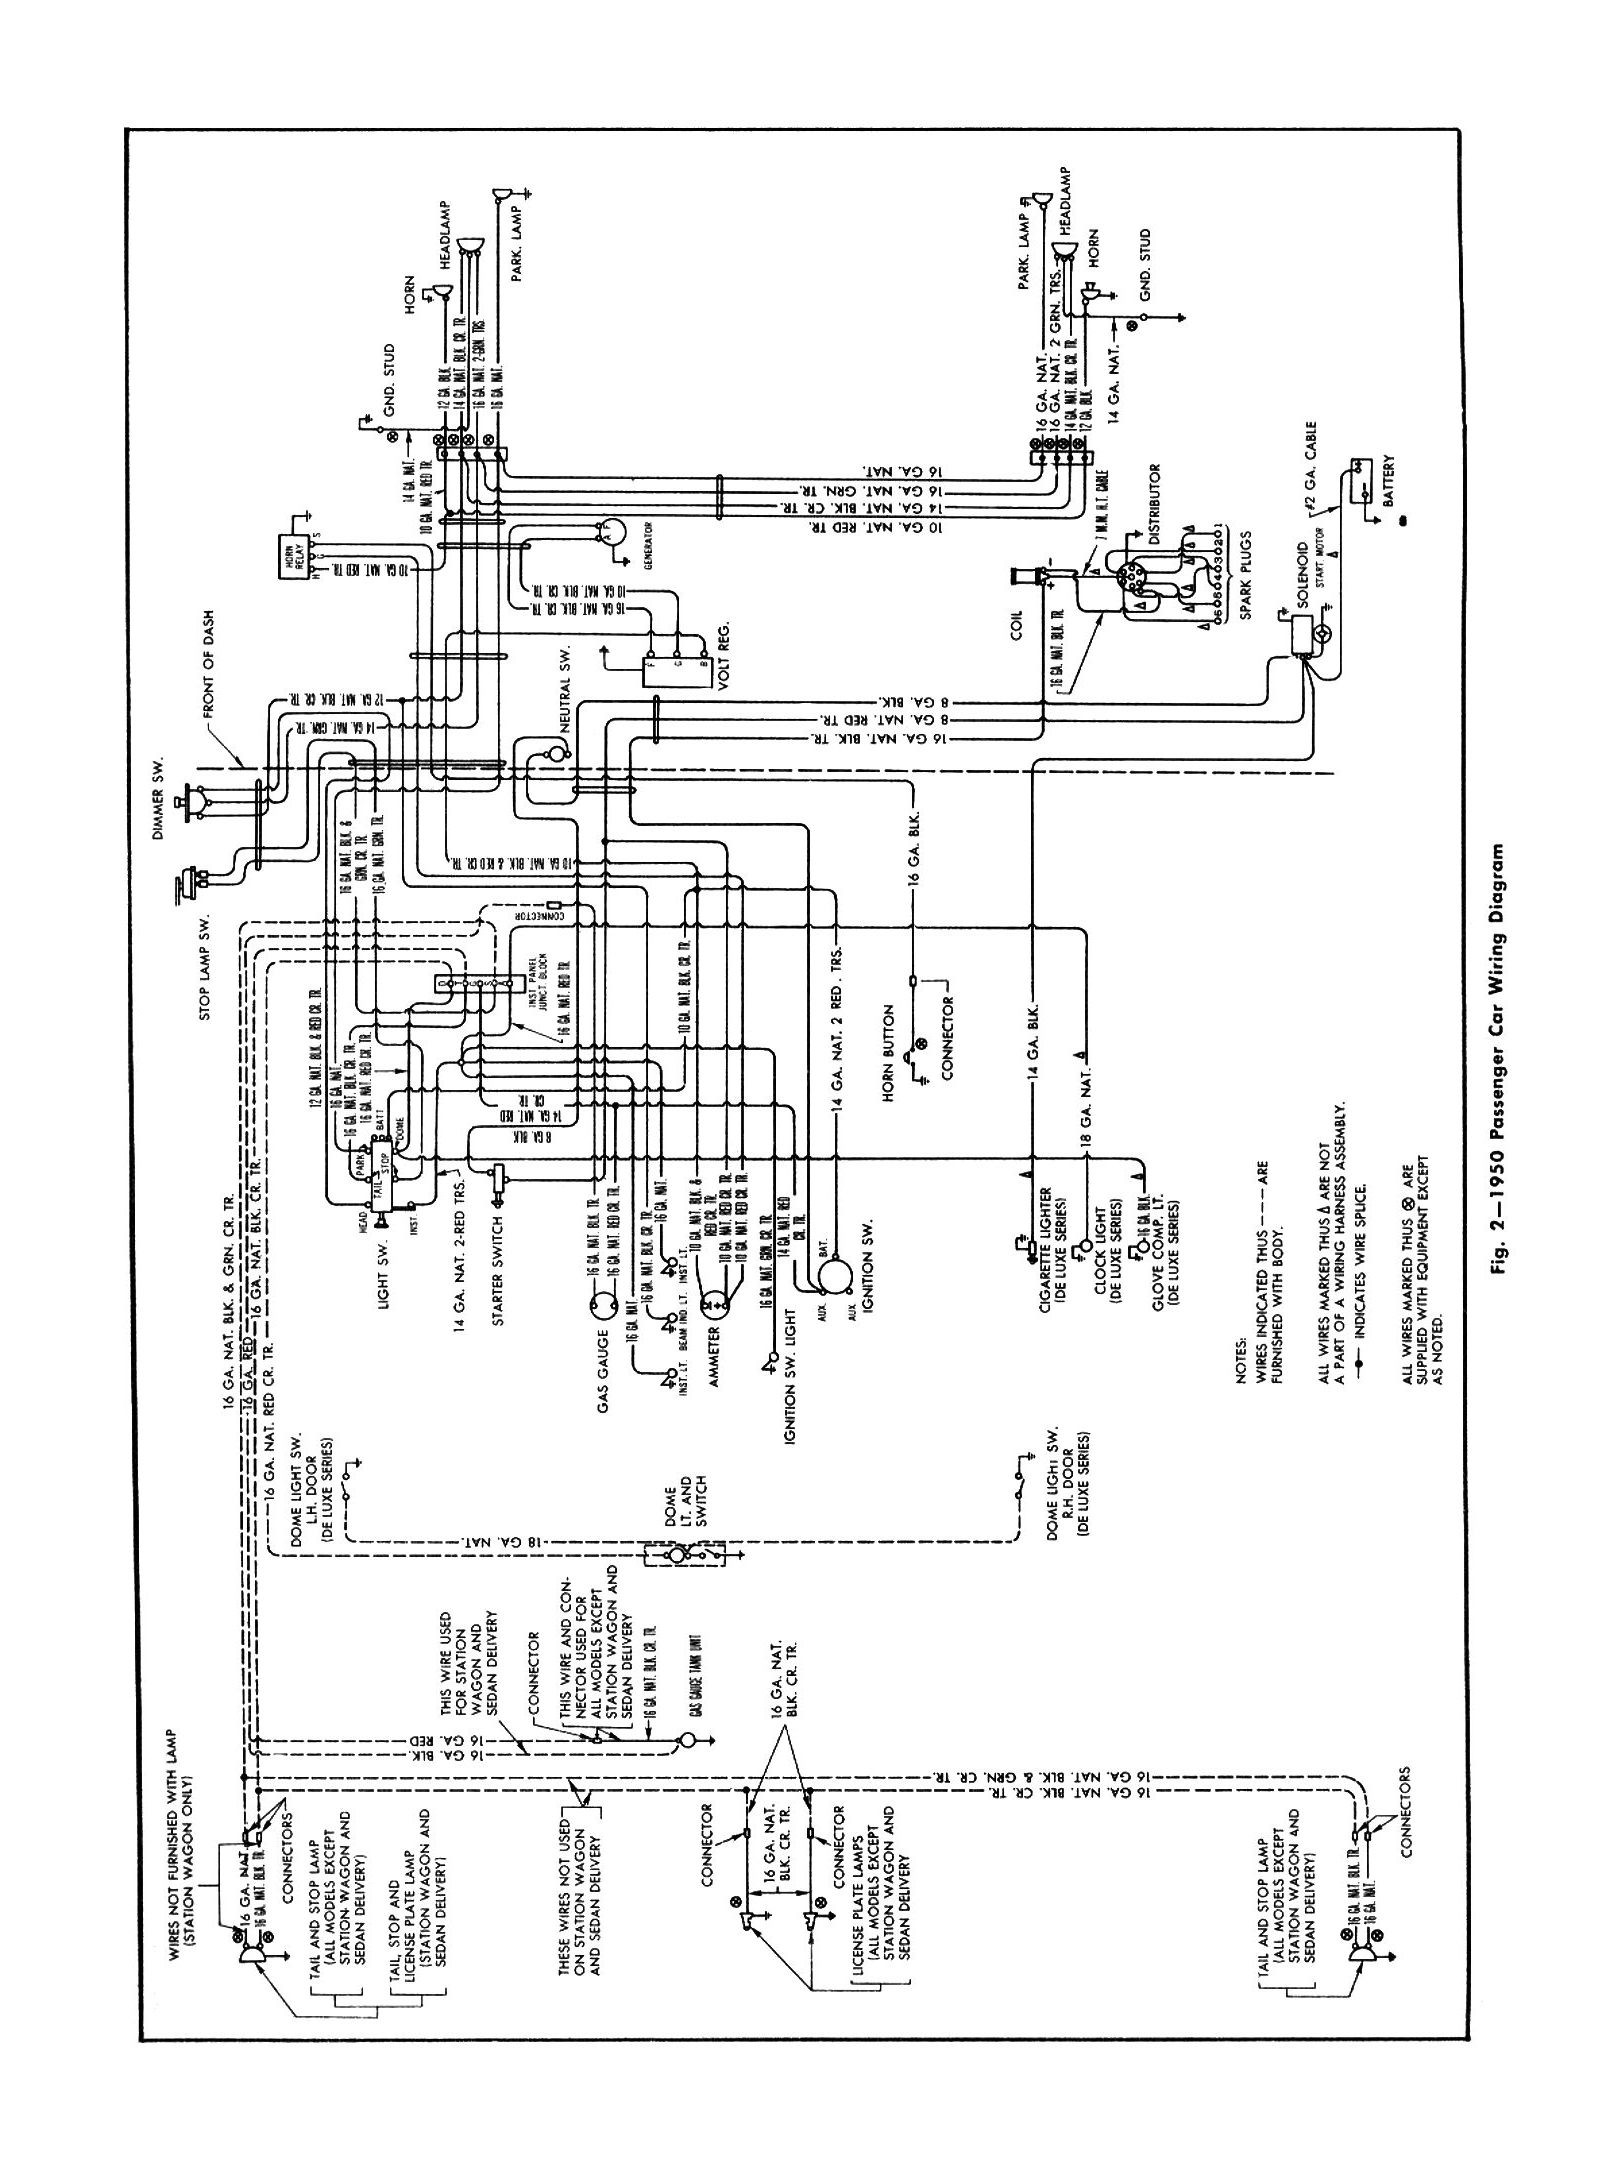 1949 chevy wiring harness house wiring diagram symbols u2022 rh maxturner co 1949 chevy truck wiring diagram 1949 chevy truck wiring diagram